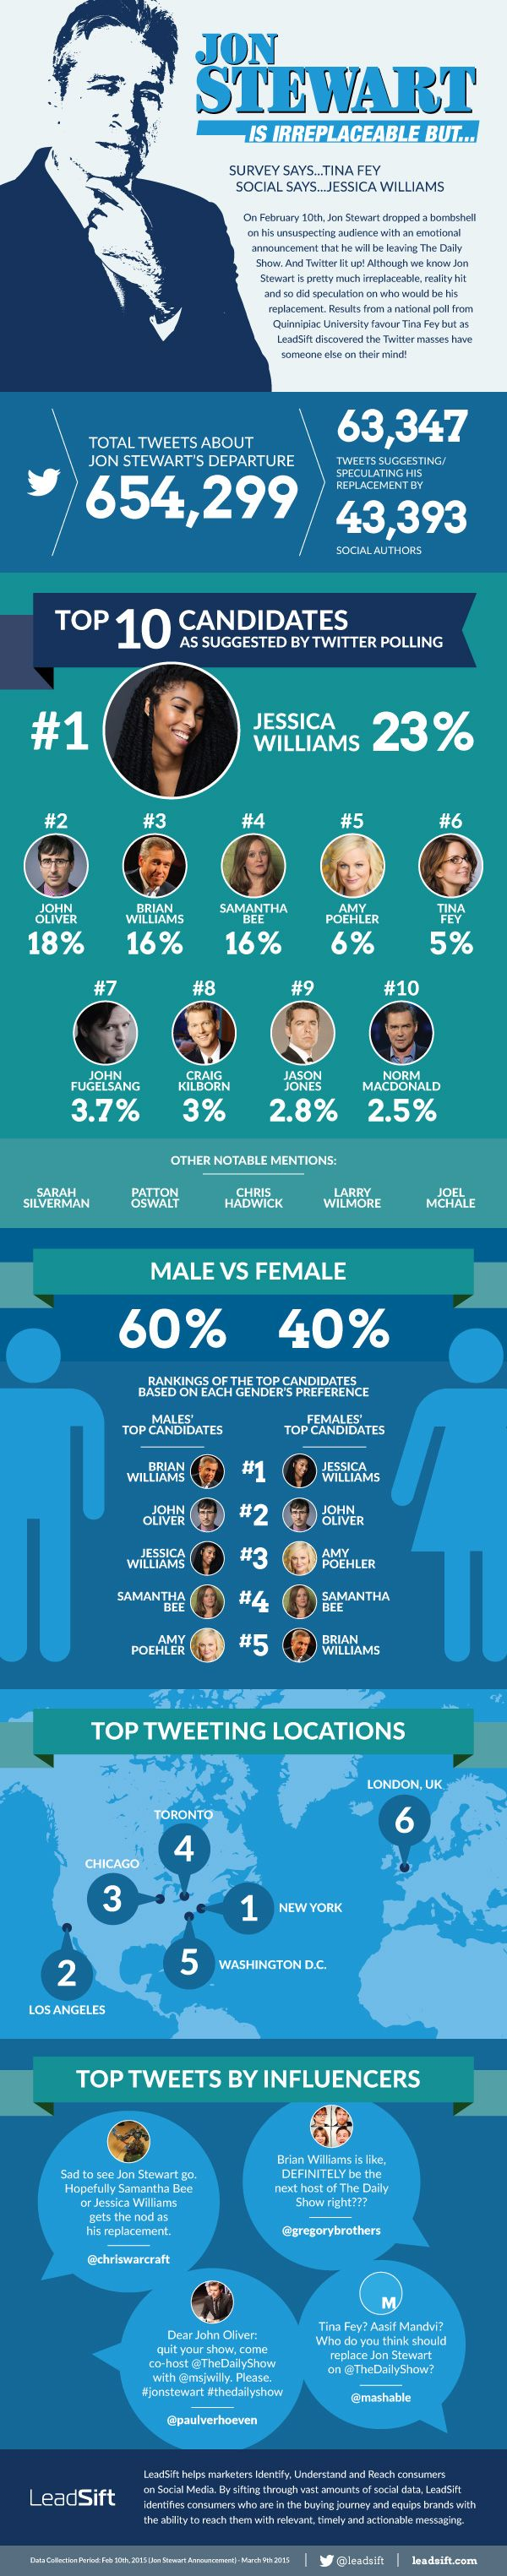 [infographic] The Daily Show & Jon Stewart's Legacy: